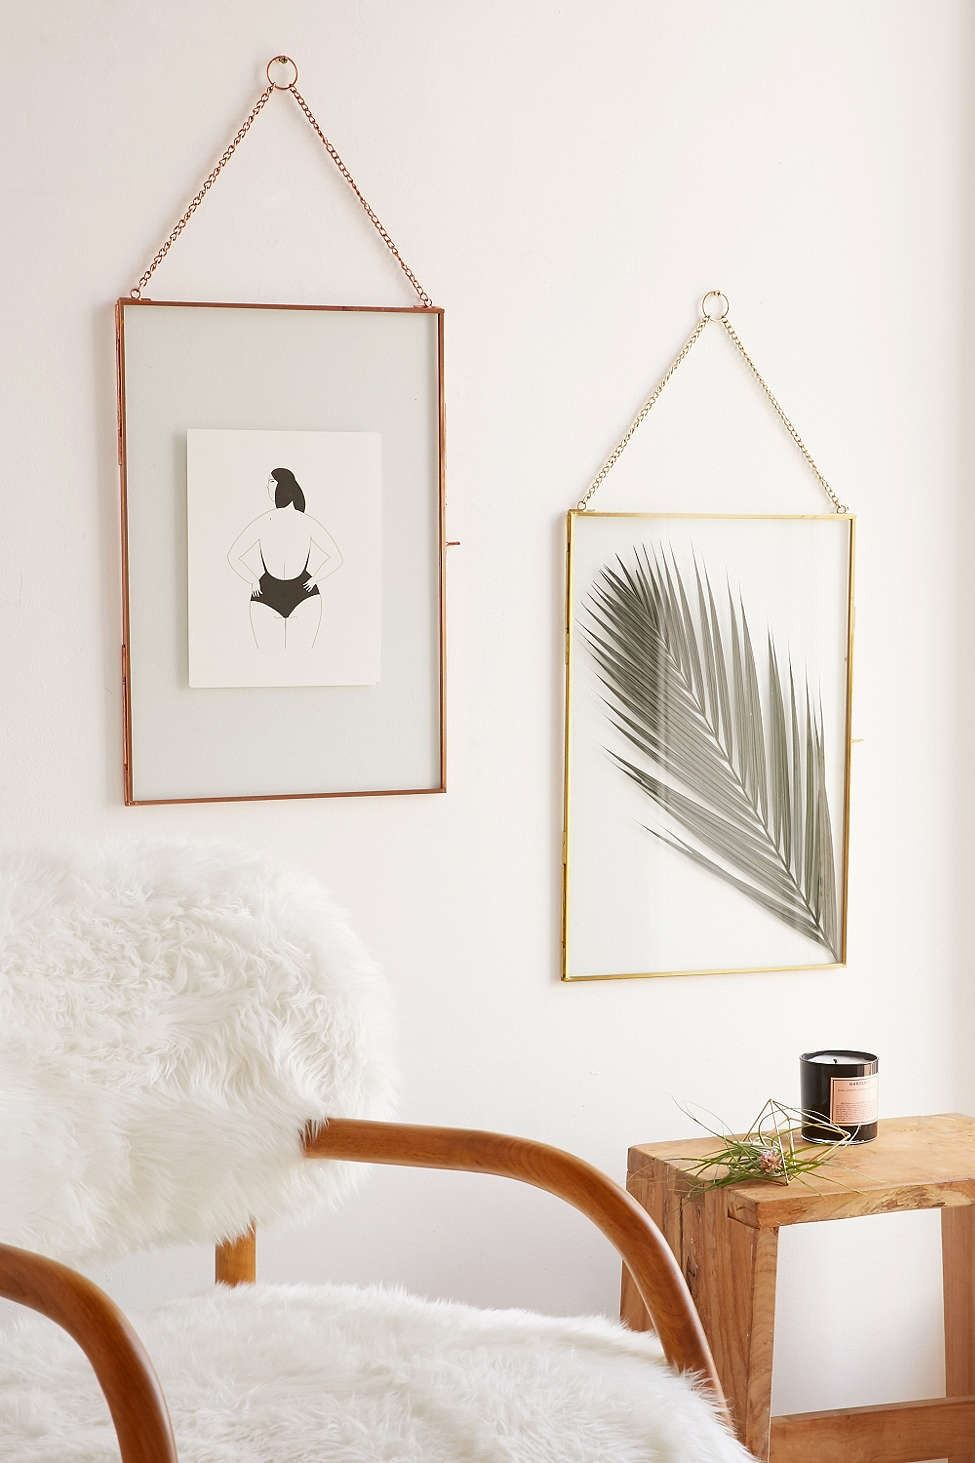 Glass Hanging Display Frame Wall Space Decoraci 243 N De